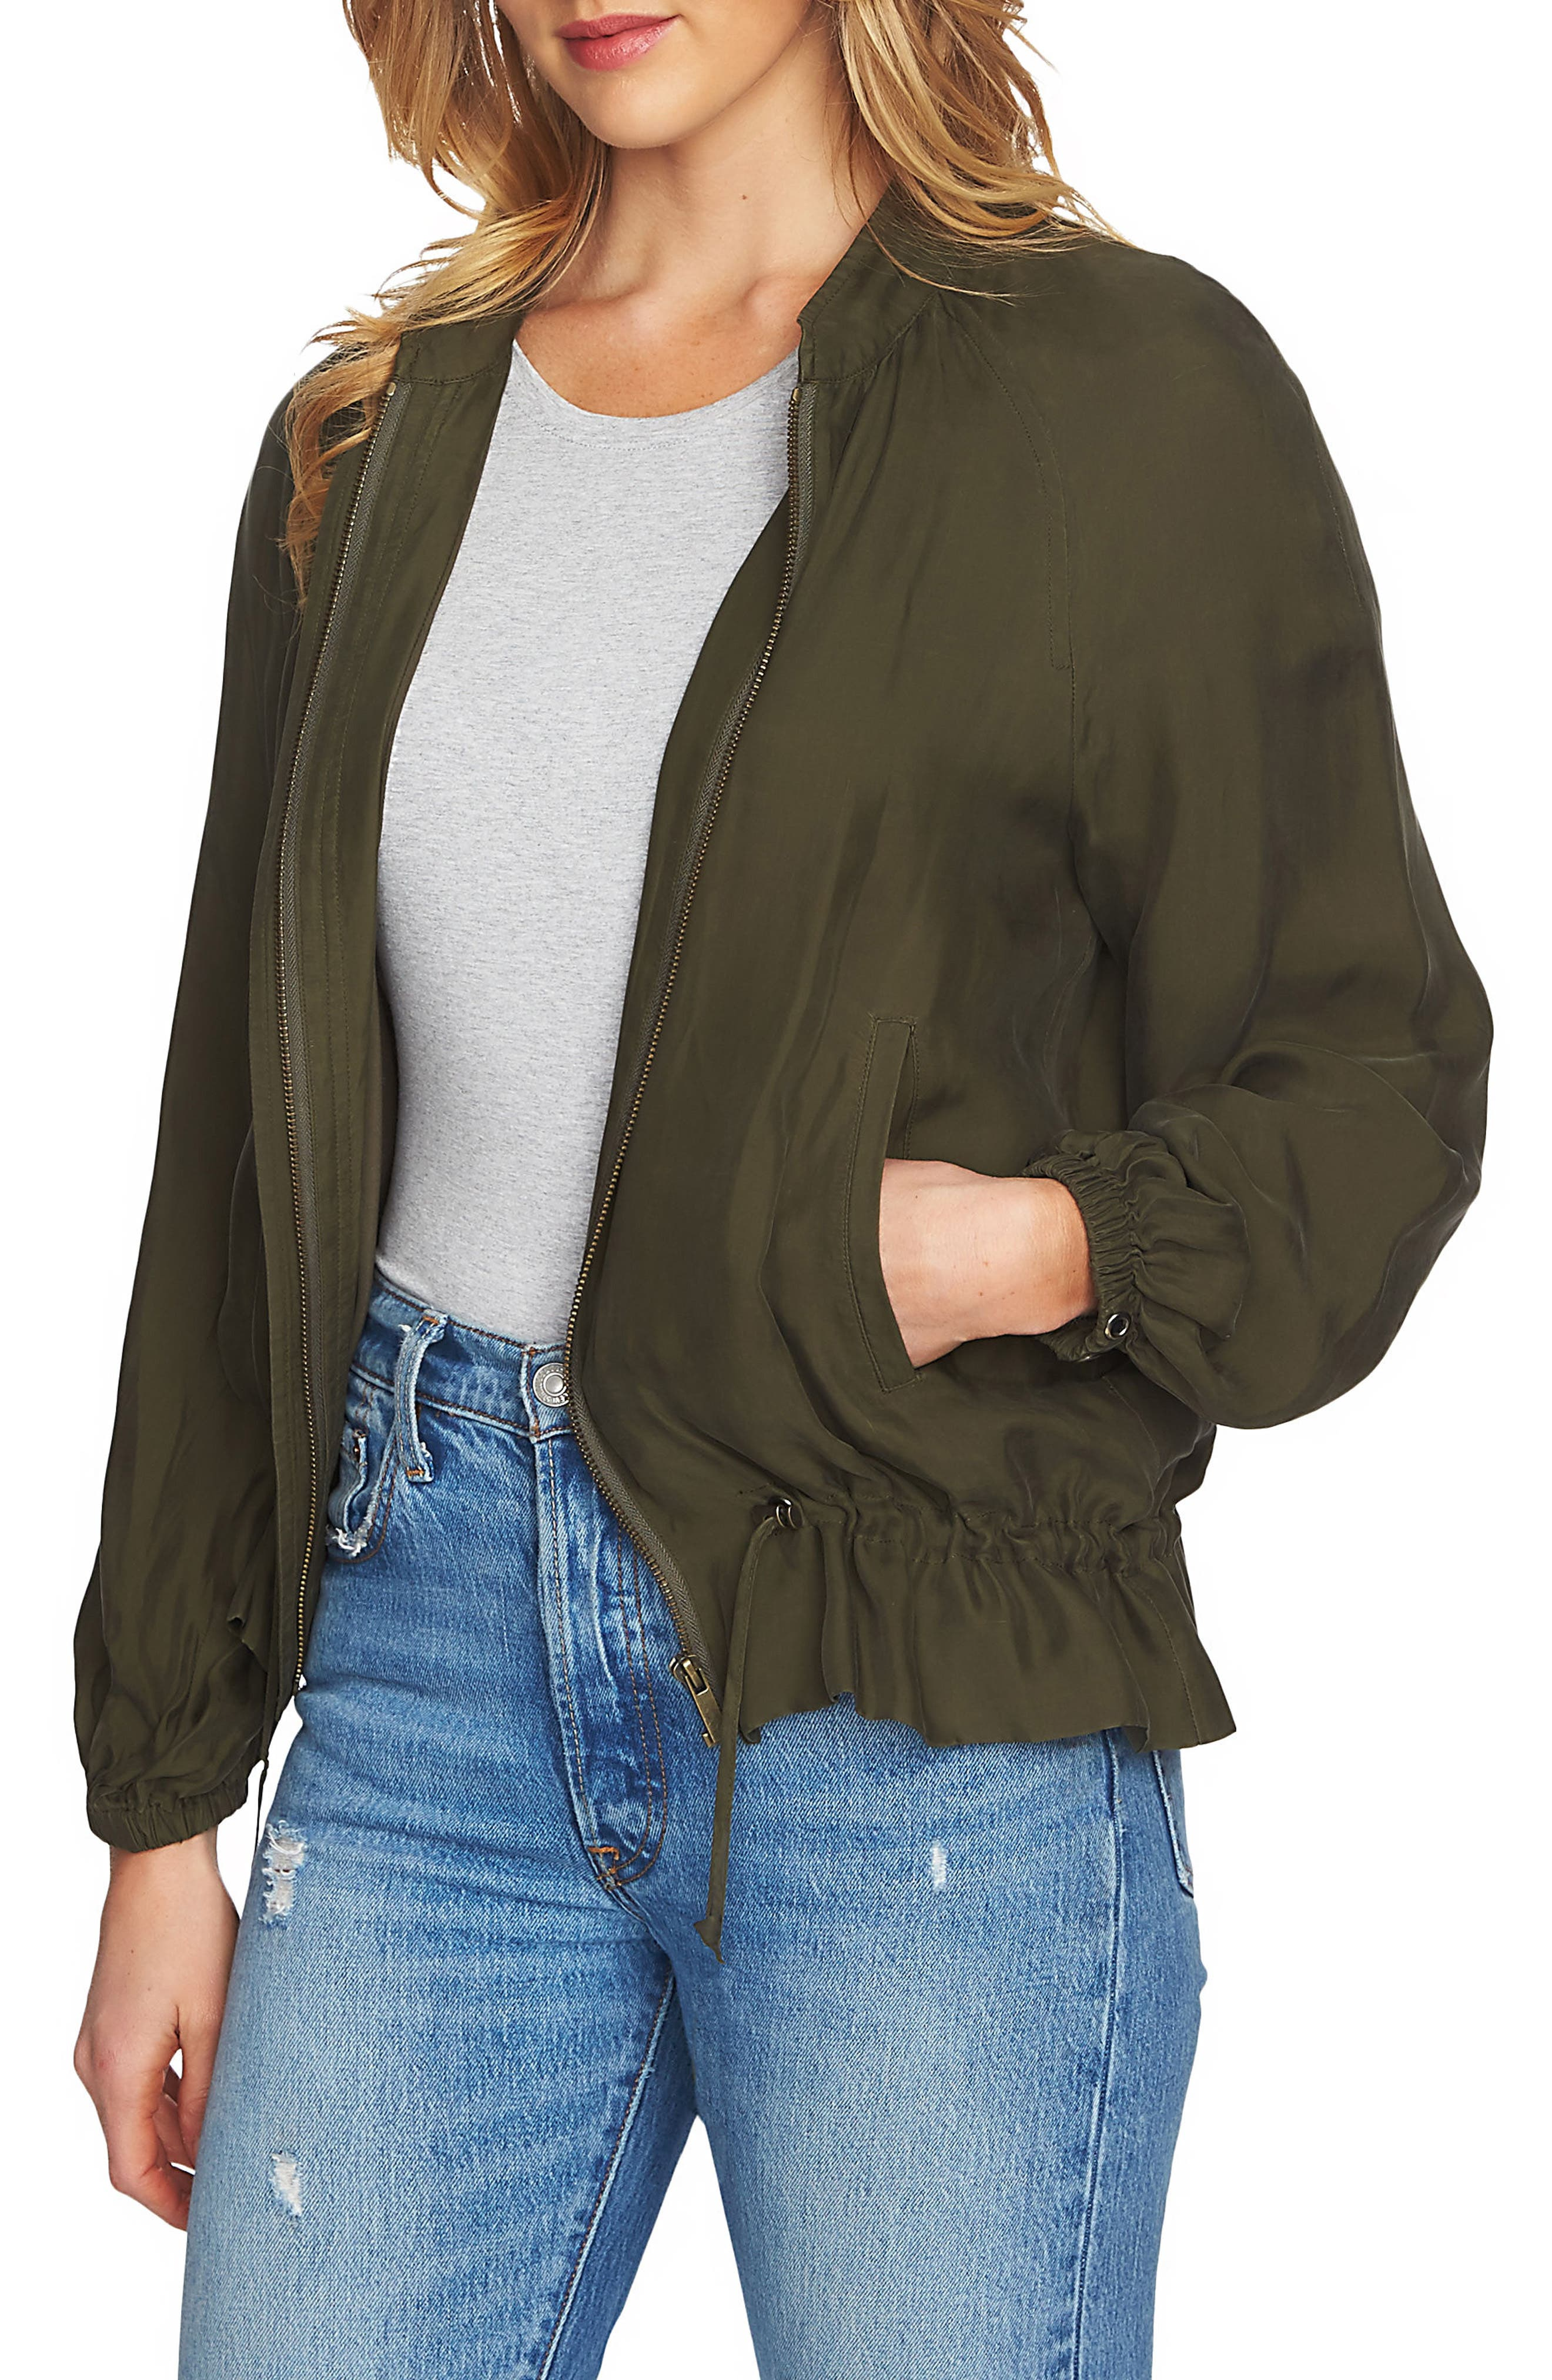 Blouson Sleeve Bomber Jacket,                             Main thumbnail 1, color,                             311